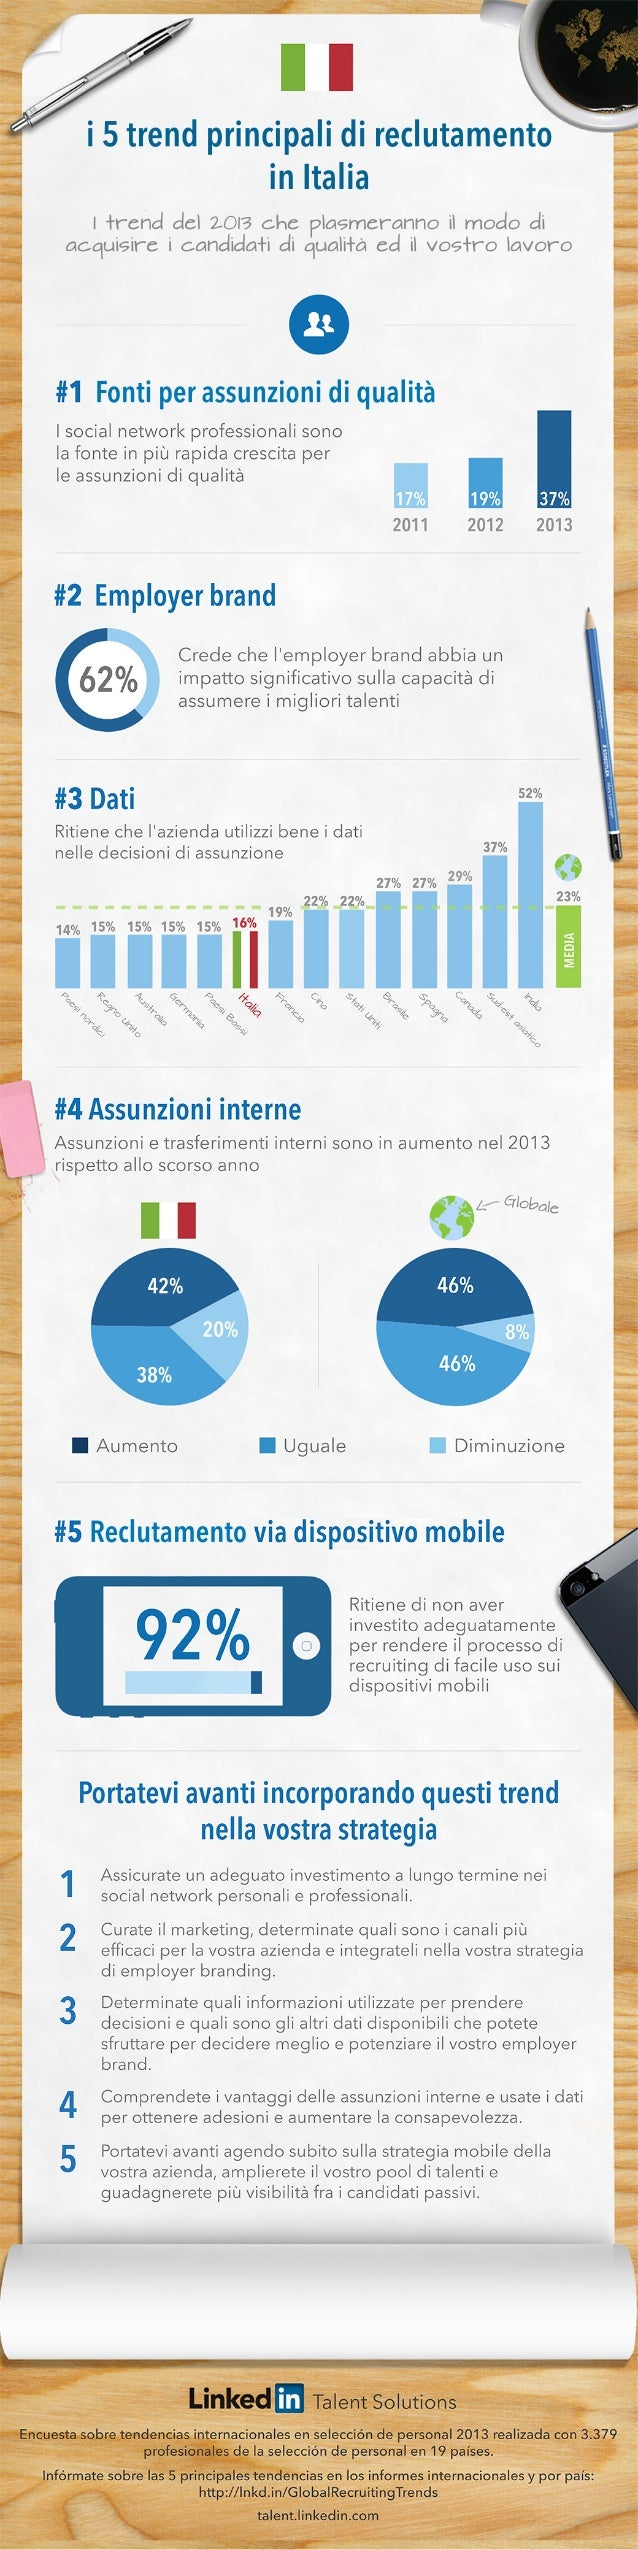 Italy Recruiting Trends Infographic 2013 | Italian